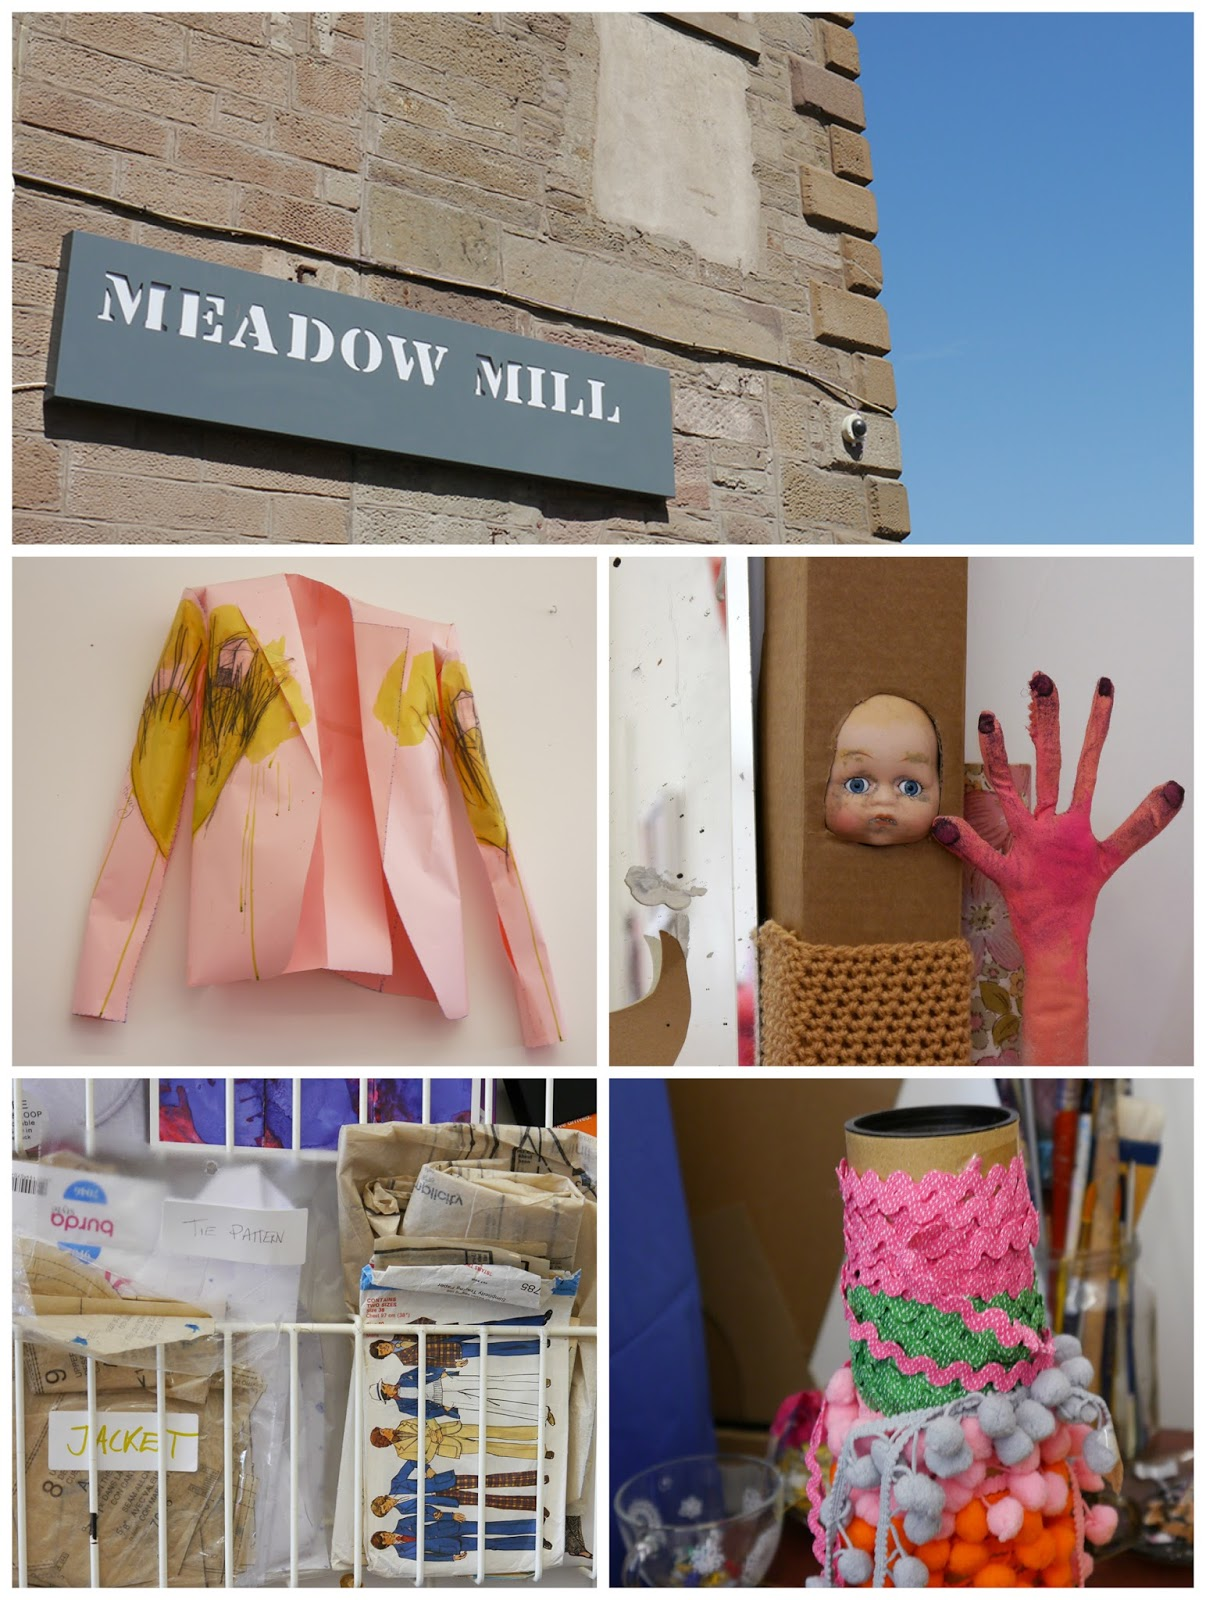 Dundee, Wasps Studios, Meadow Mill, artist studio, studio visit, Jack(et), Jill Skulina, blogging duo, Scottish Bloggers, Dundee Bloggers, jackets, embroidery, customisation, custom orders, wearable art, Louise Ritchie, studio details